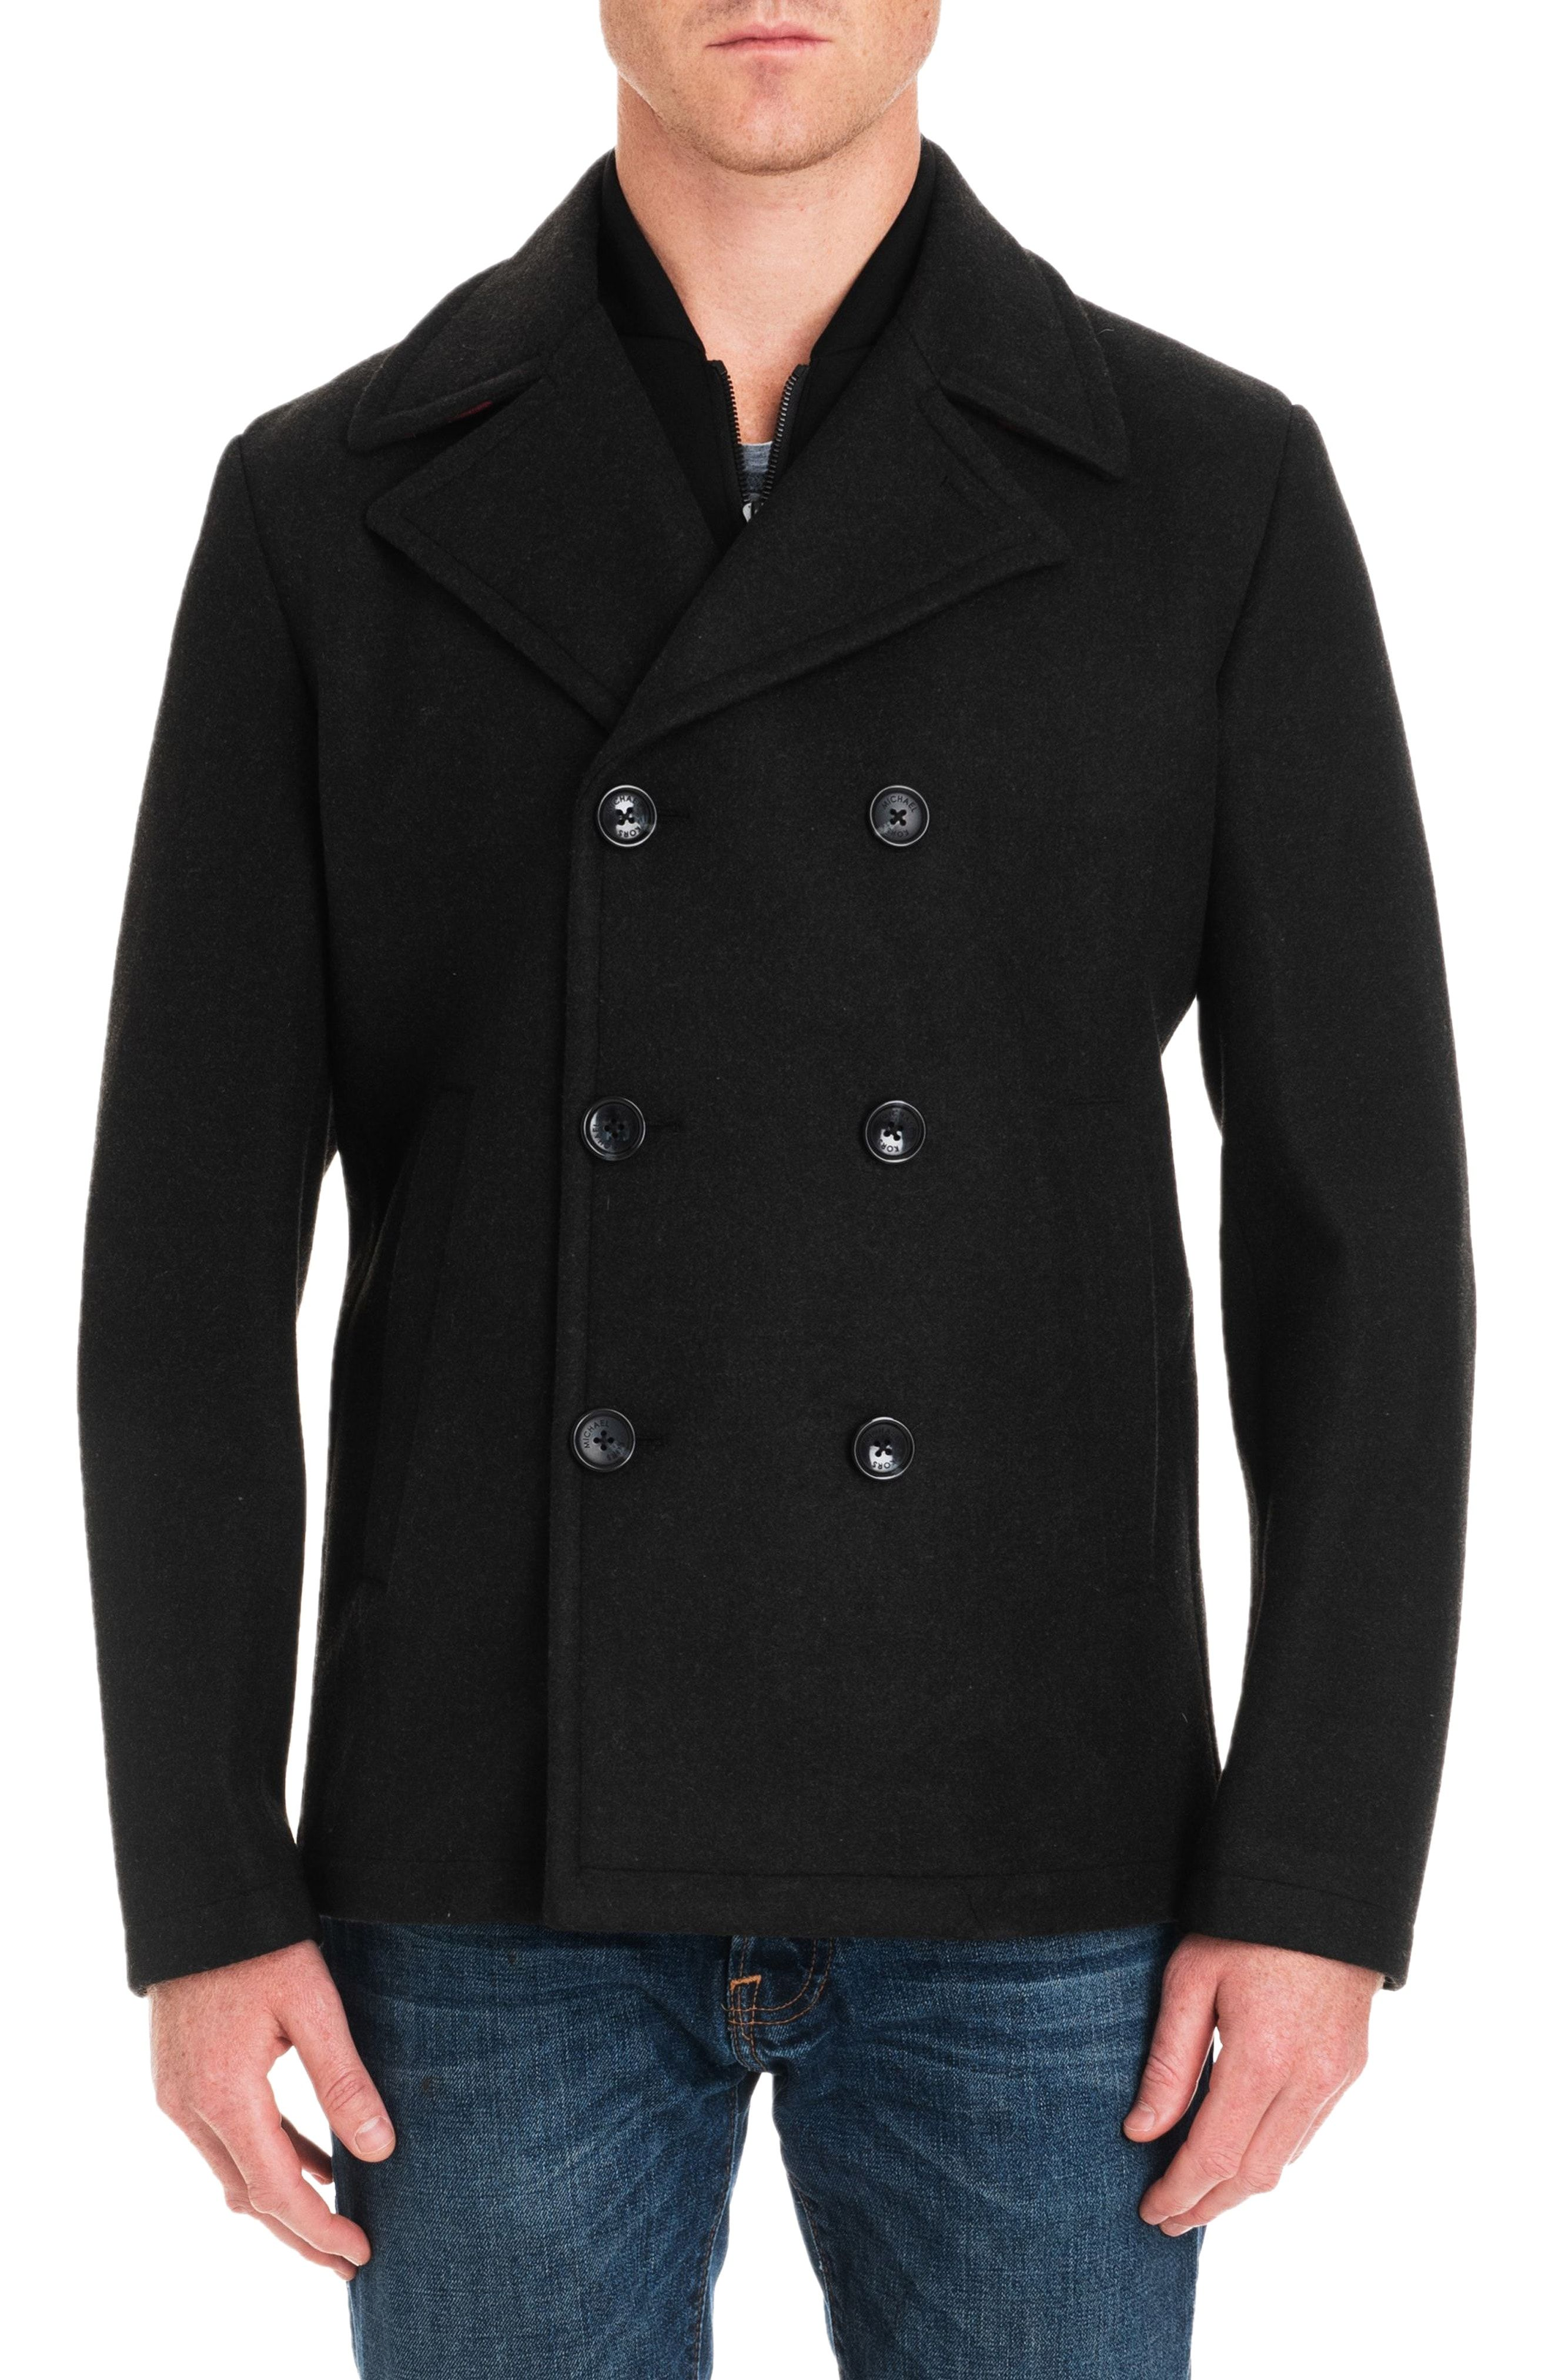 dcdf2281e472b9 20 Best Men s Winter Coats and Jackets 2018 - Cold Weather Outerwear